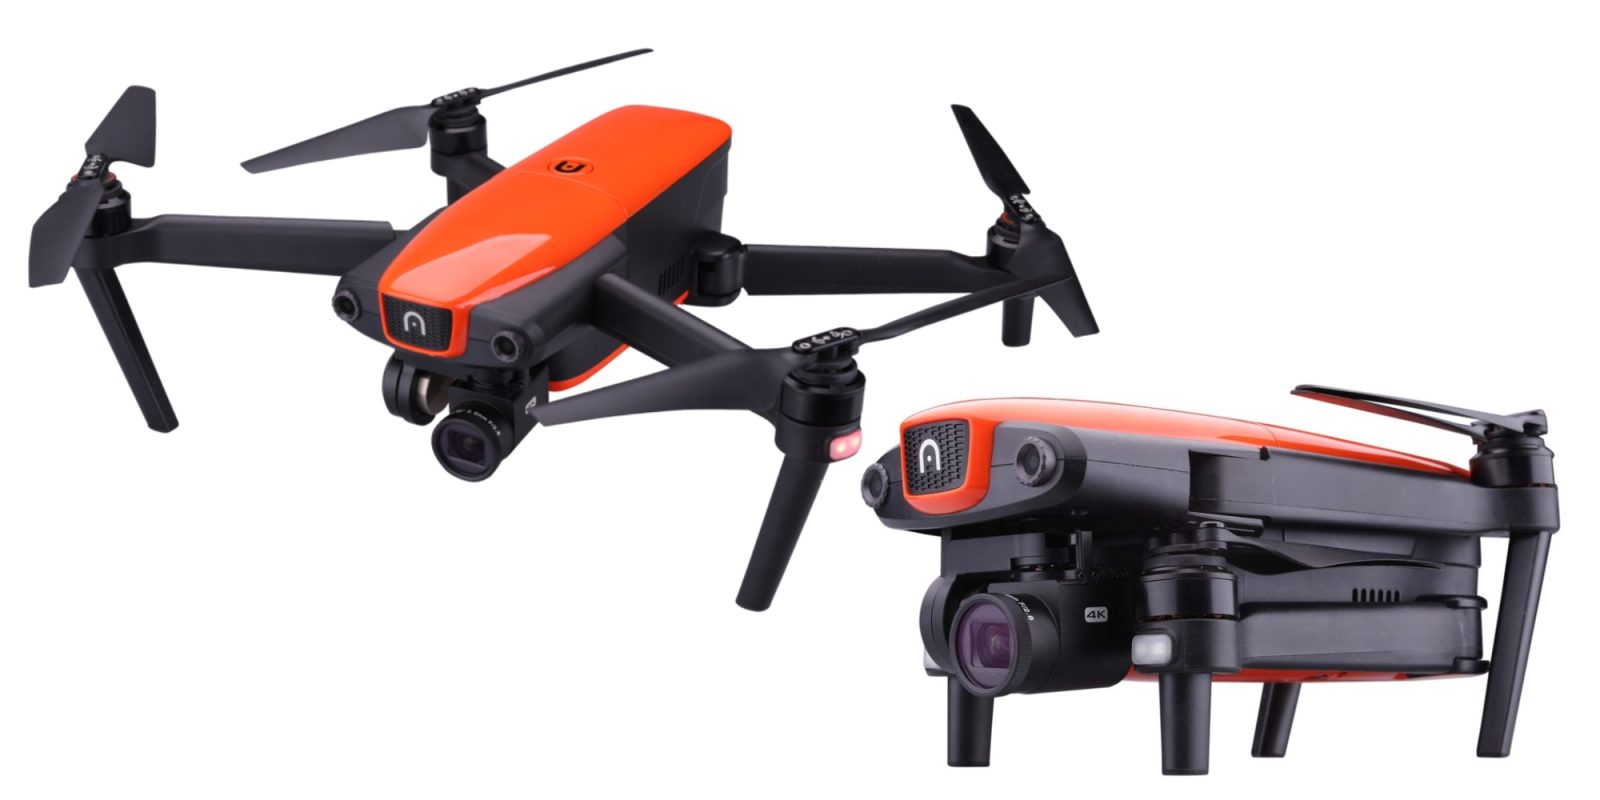 Lock-in exclusive up to $160 discounts on Autel EVO and Swellpro Spry+ Drones